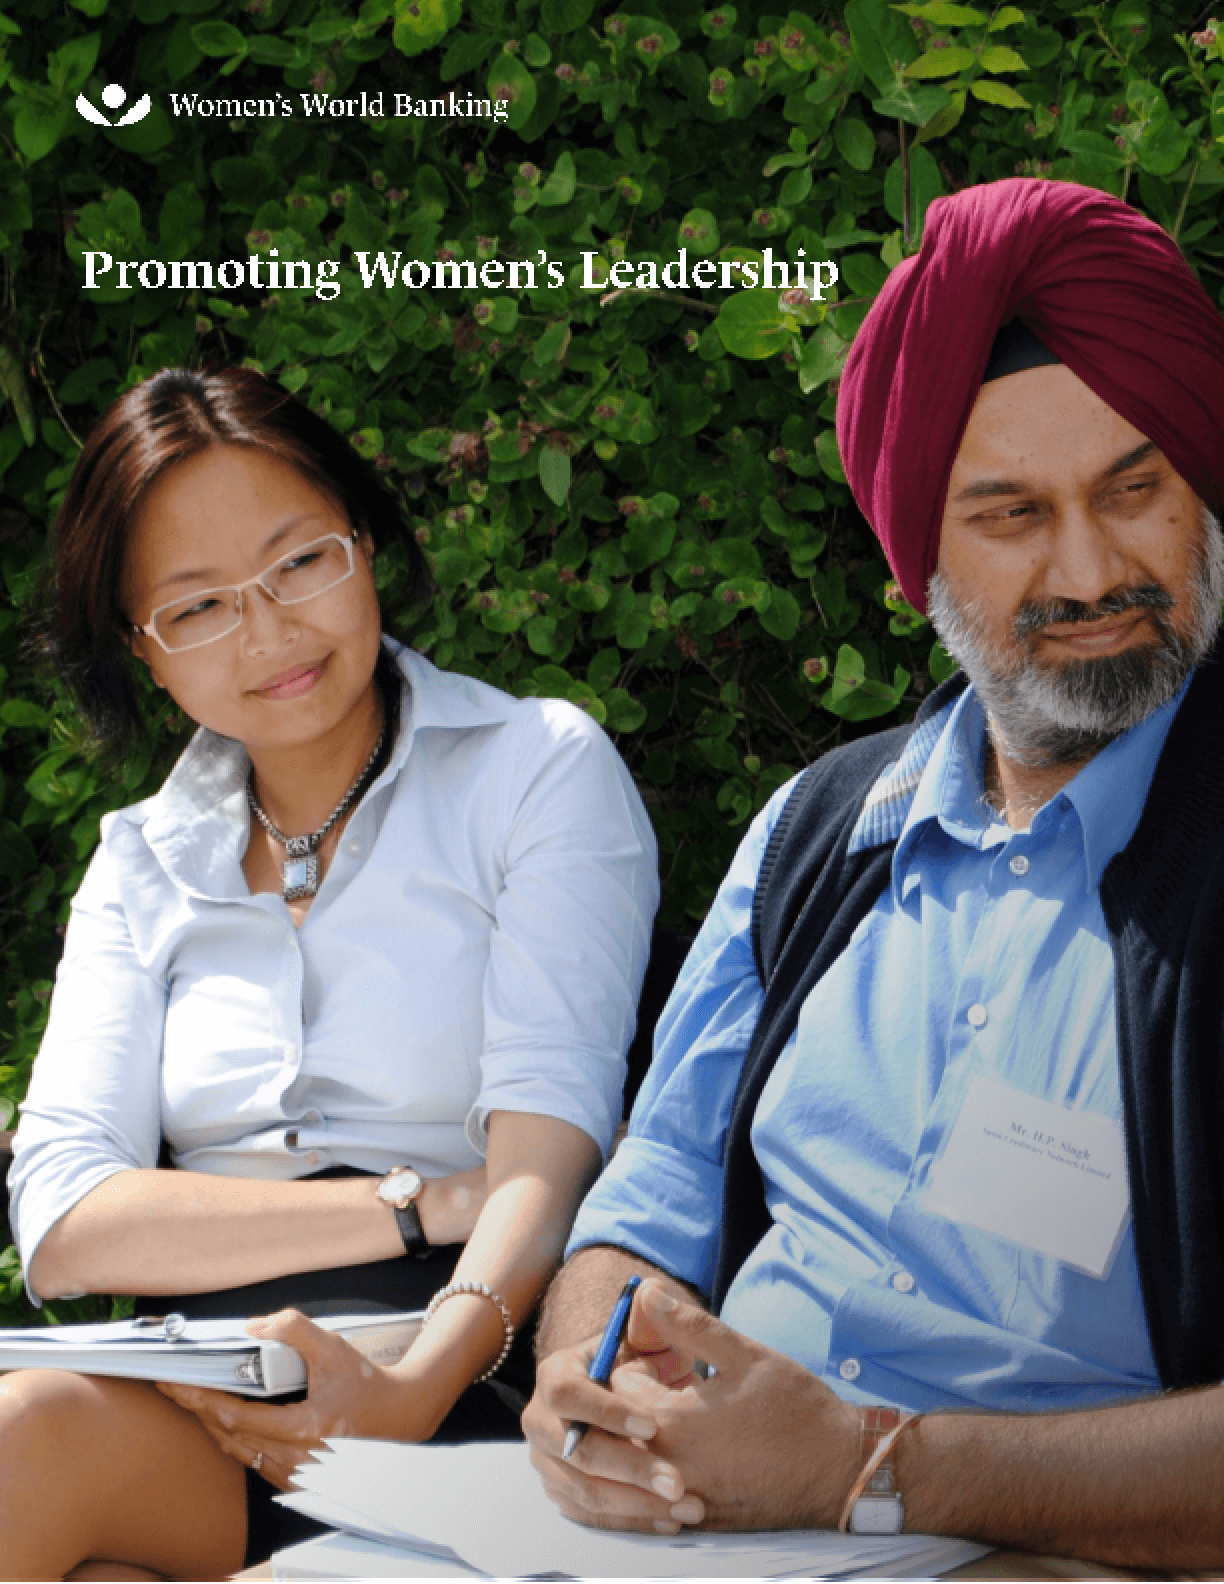 Promoting Women's Leadership